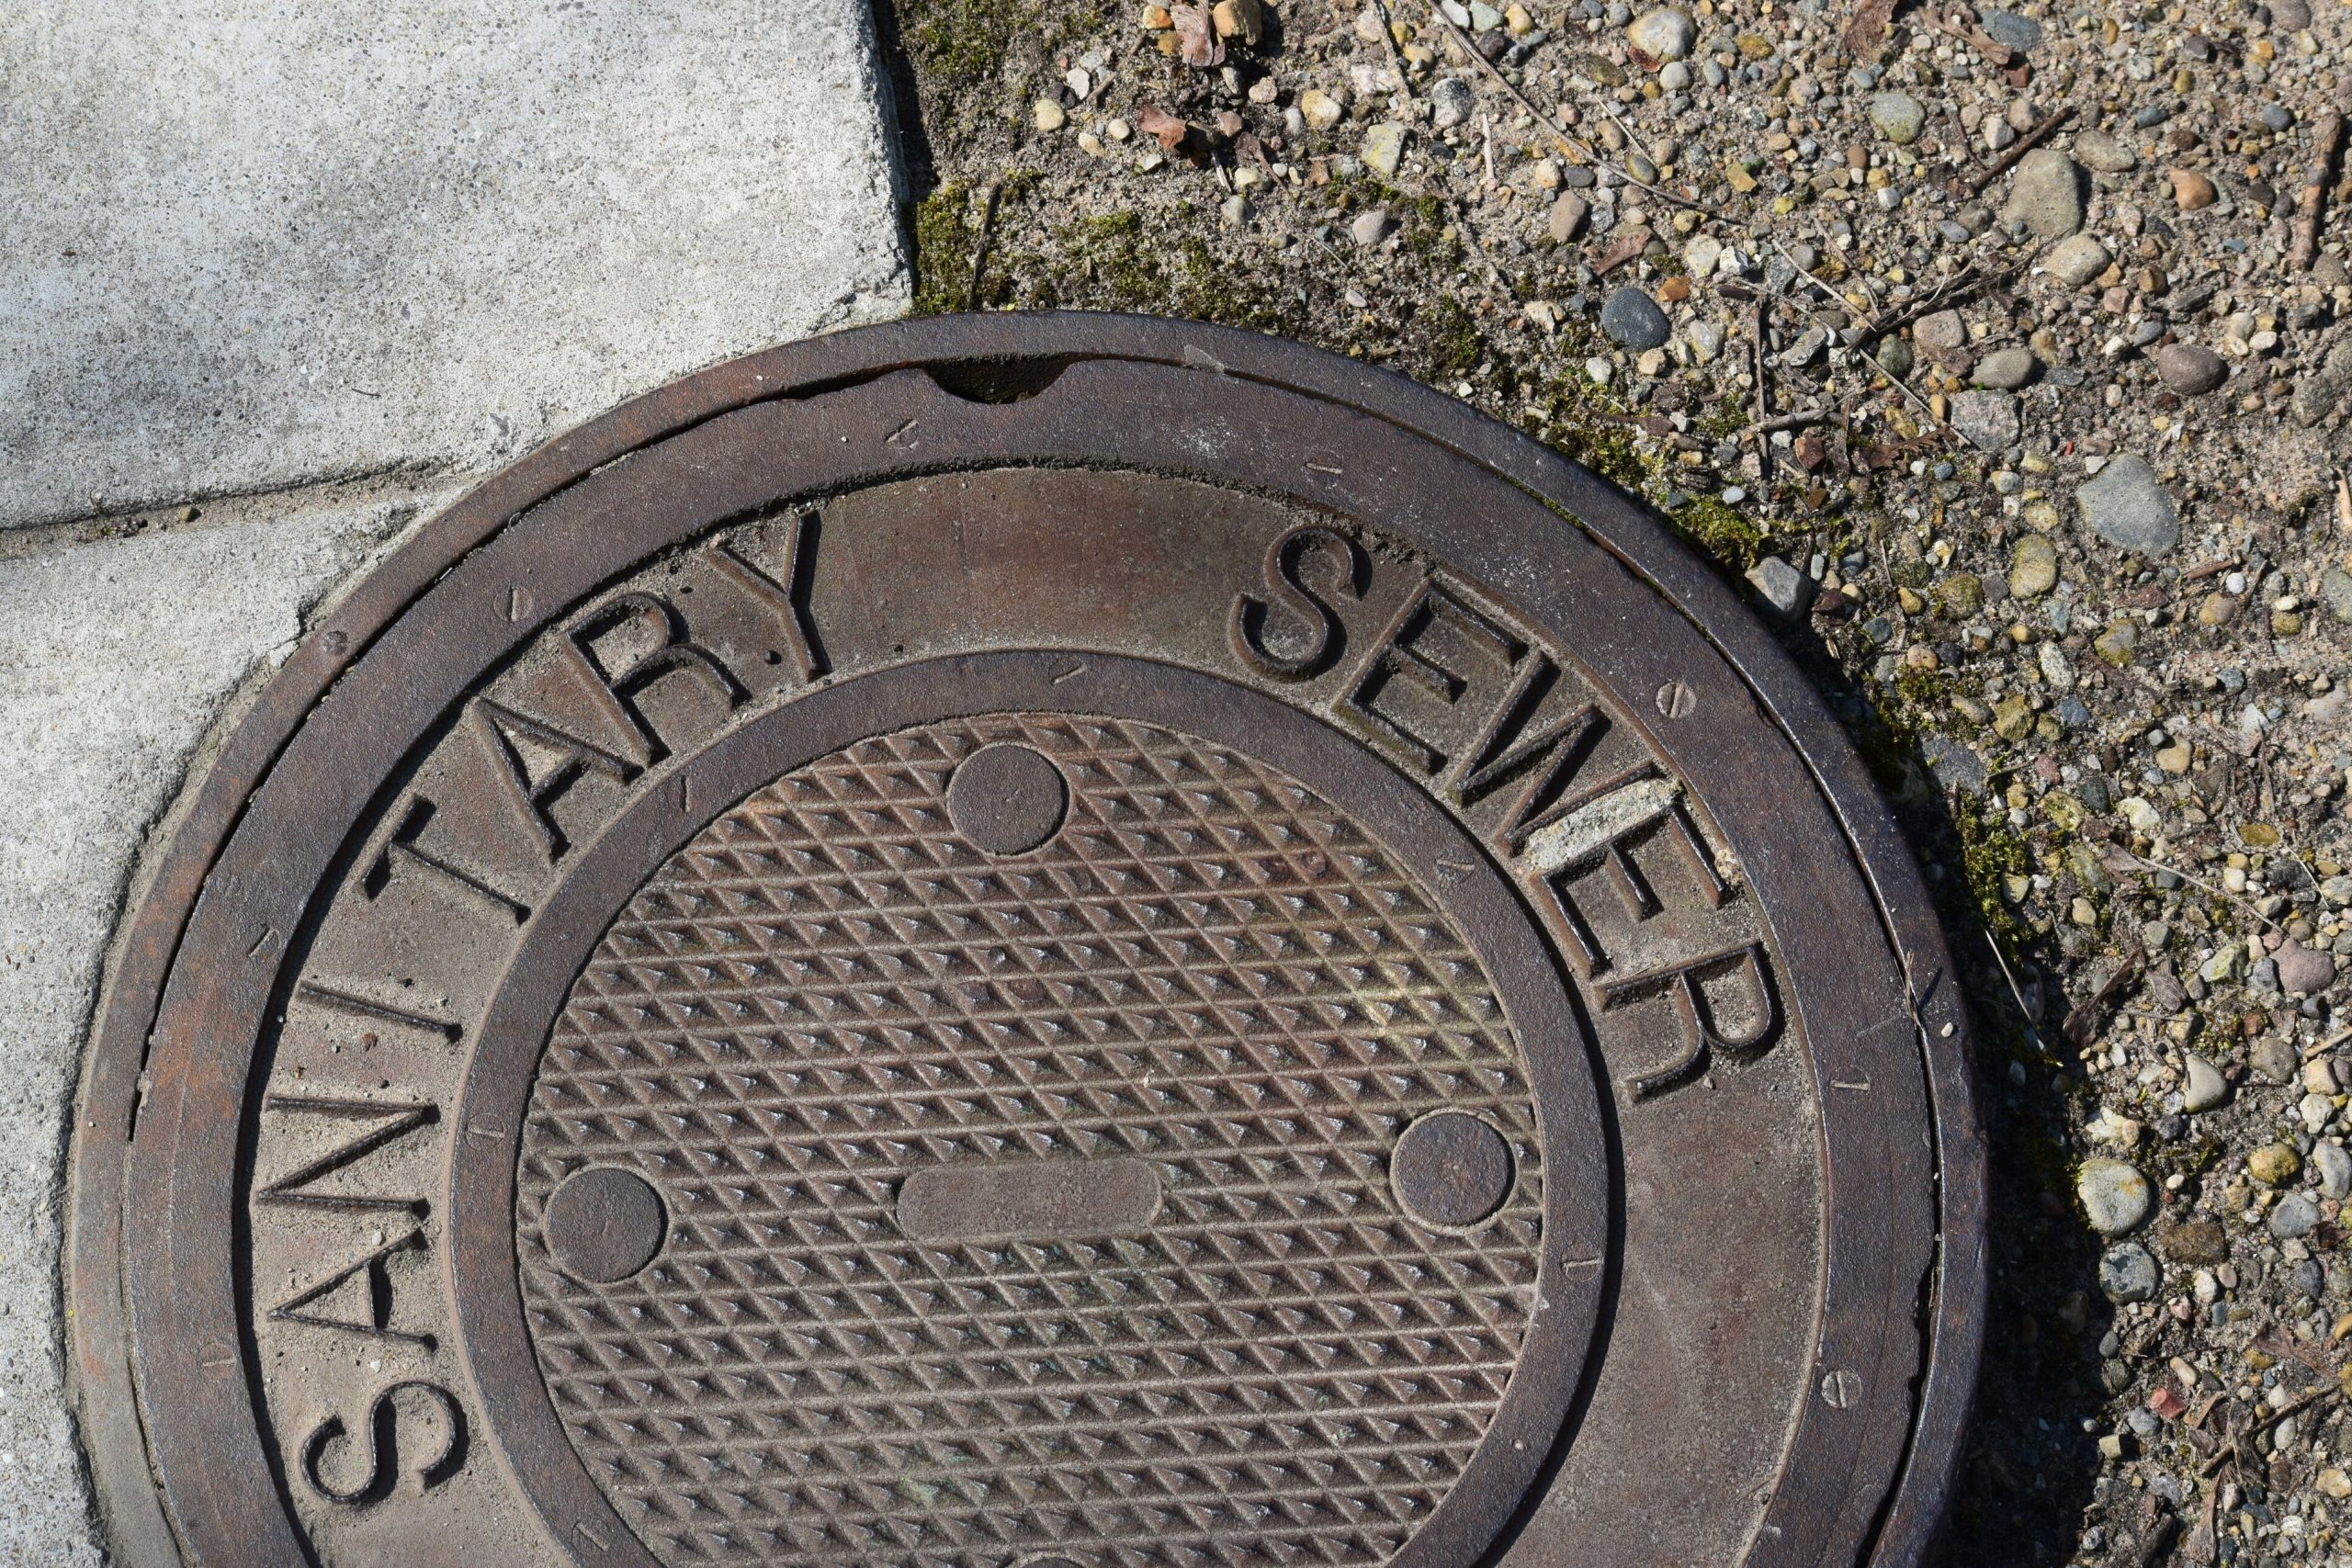 U.C.  Berkeley scientists study human waste in sewer for signs of corona virus hotspots: report